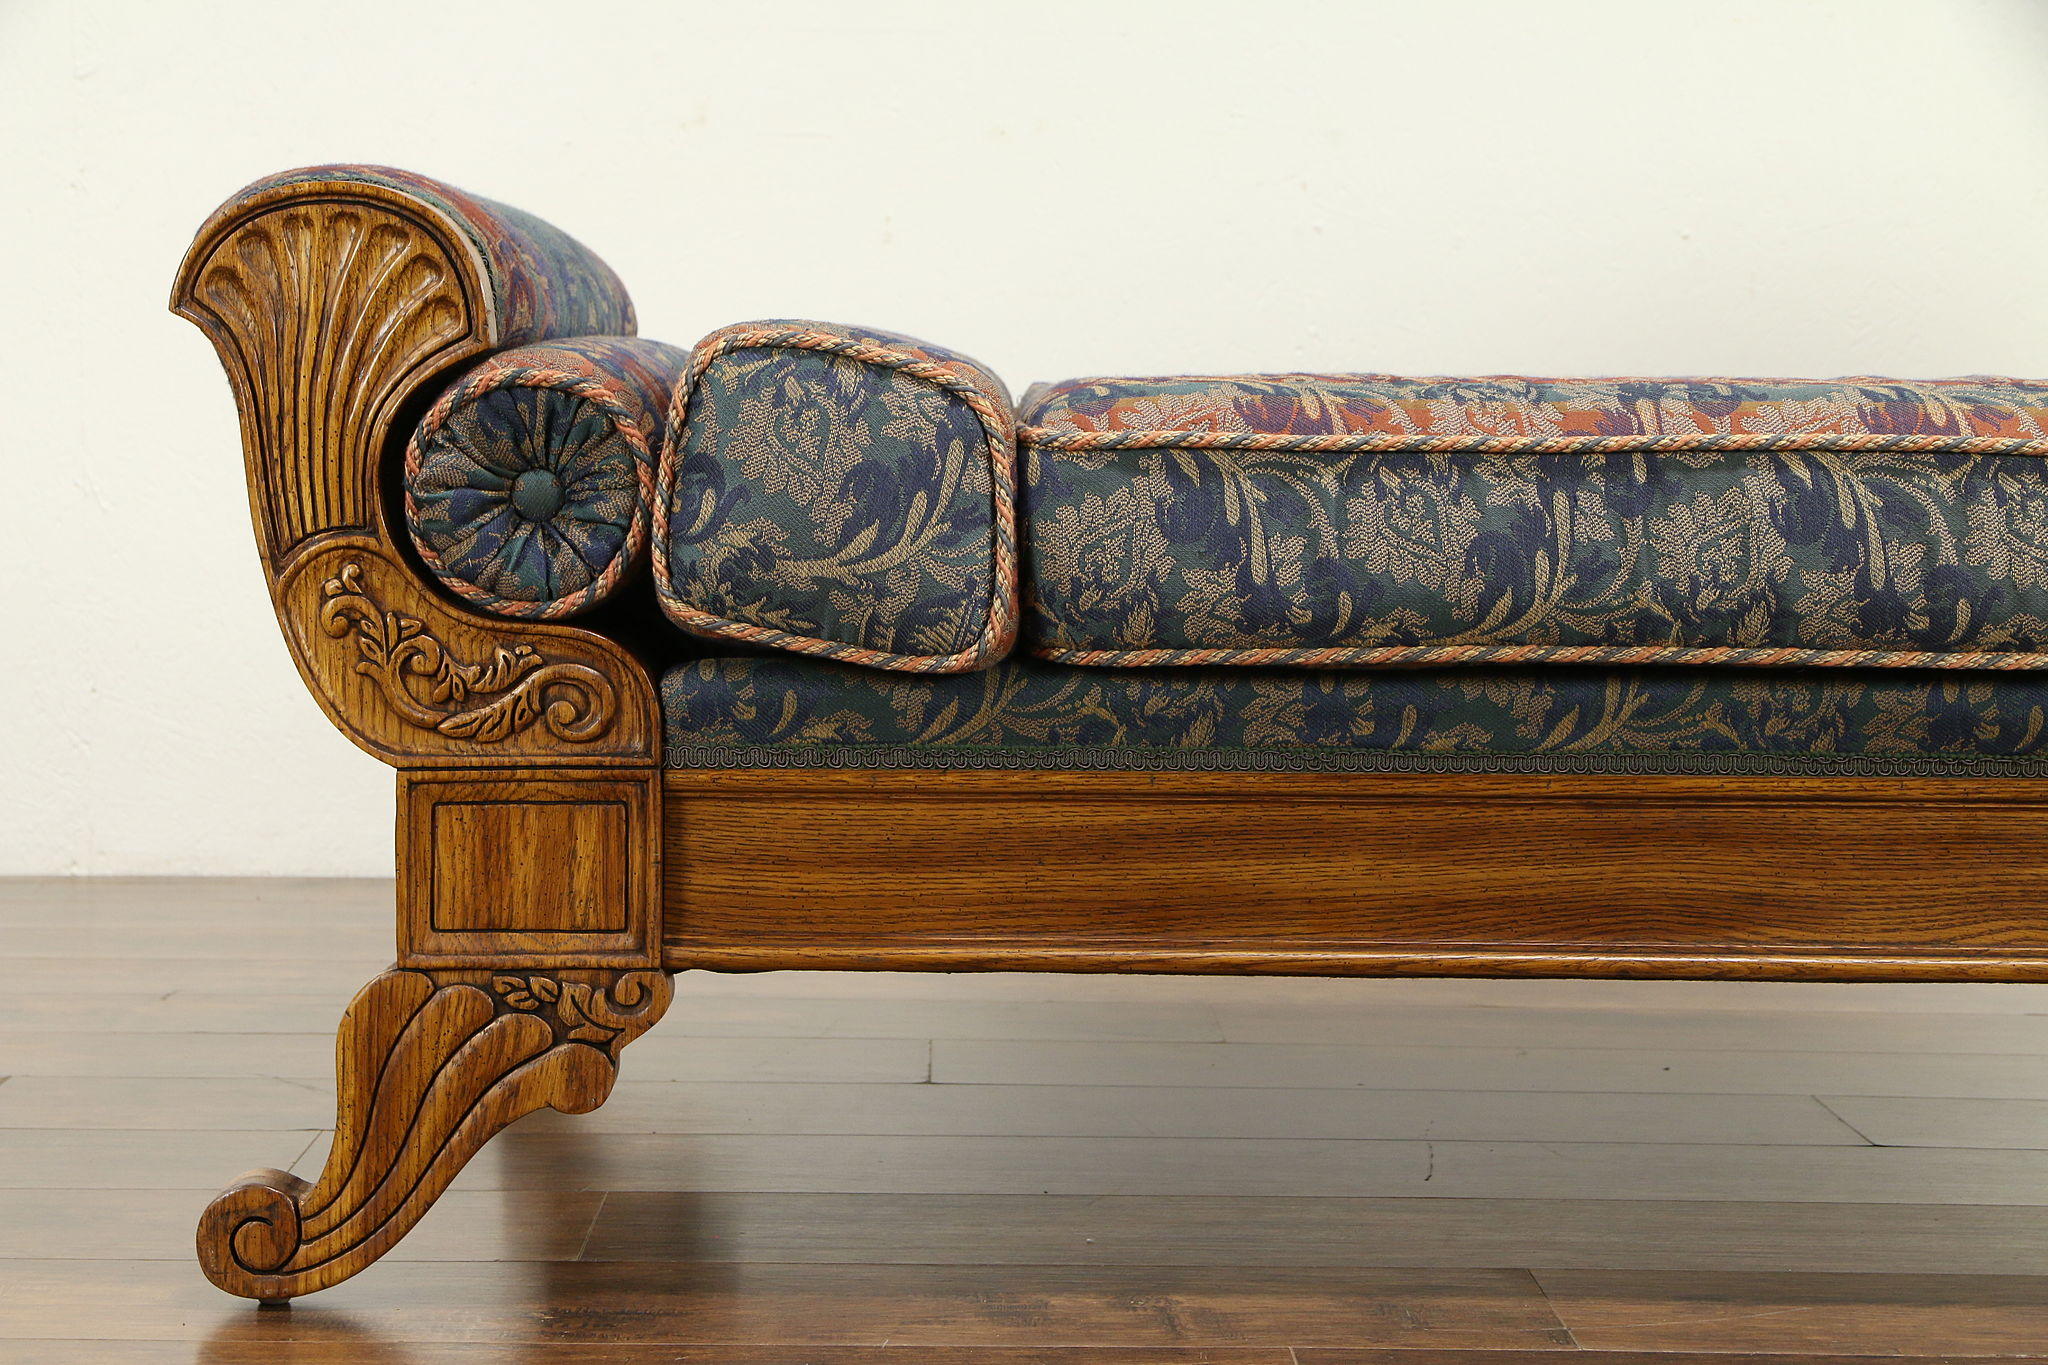 Swell Victorian Style Vintage Oak Chaise Lounge Day Bed Fainting Couch Pulaski 32275 Camellatalisay Diy Chair Ideas Camellatalisaycom